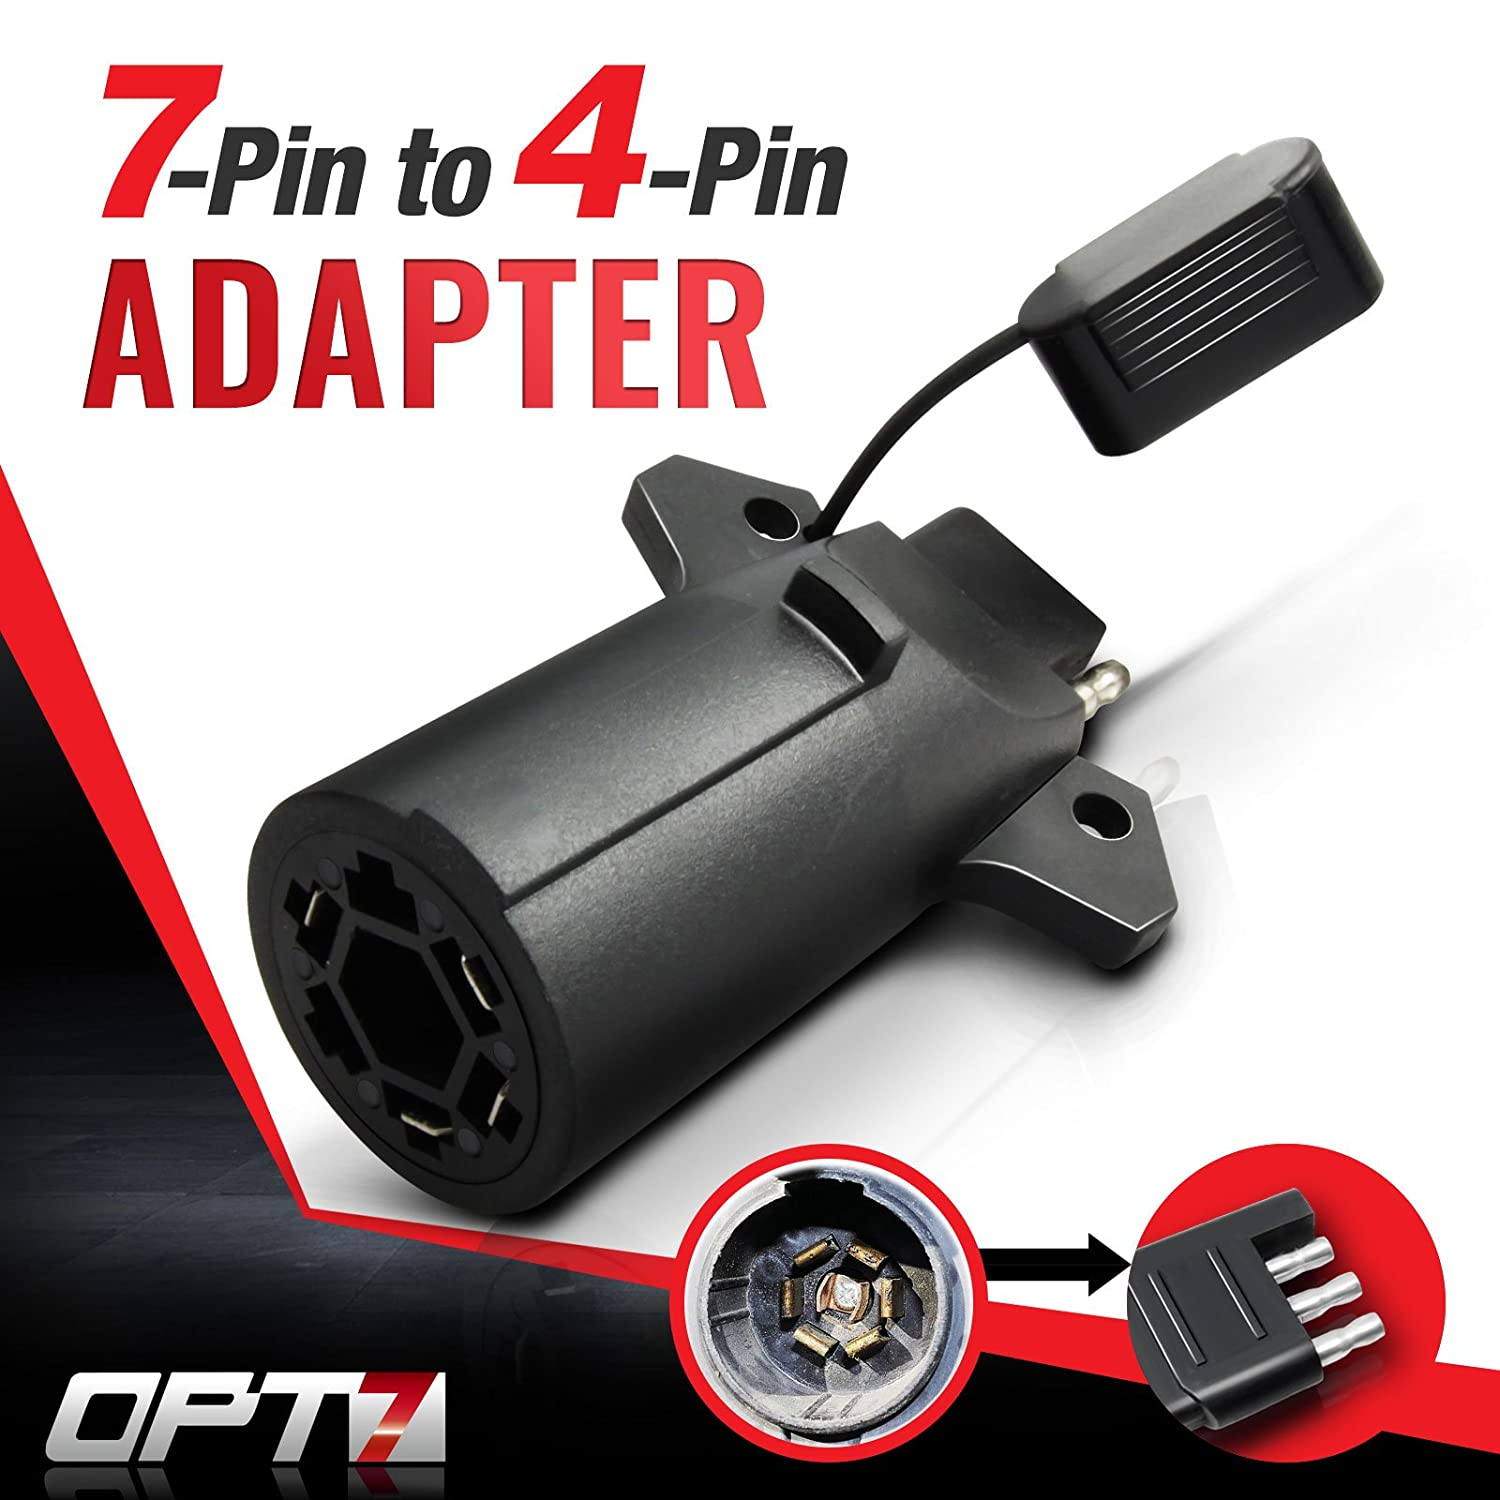 Opt7 Weatherproof 7 Way Flat Blade To 4 Pin Adapter Wiring Your Trailer Lights W Secure Tab For Tow Hitch And Redline Tailgate Led Automotive